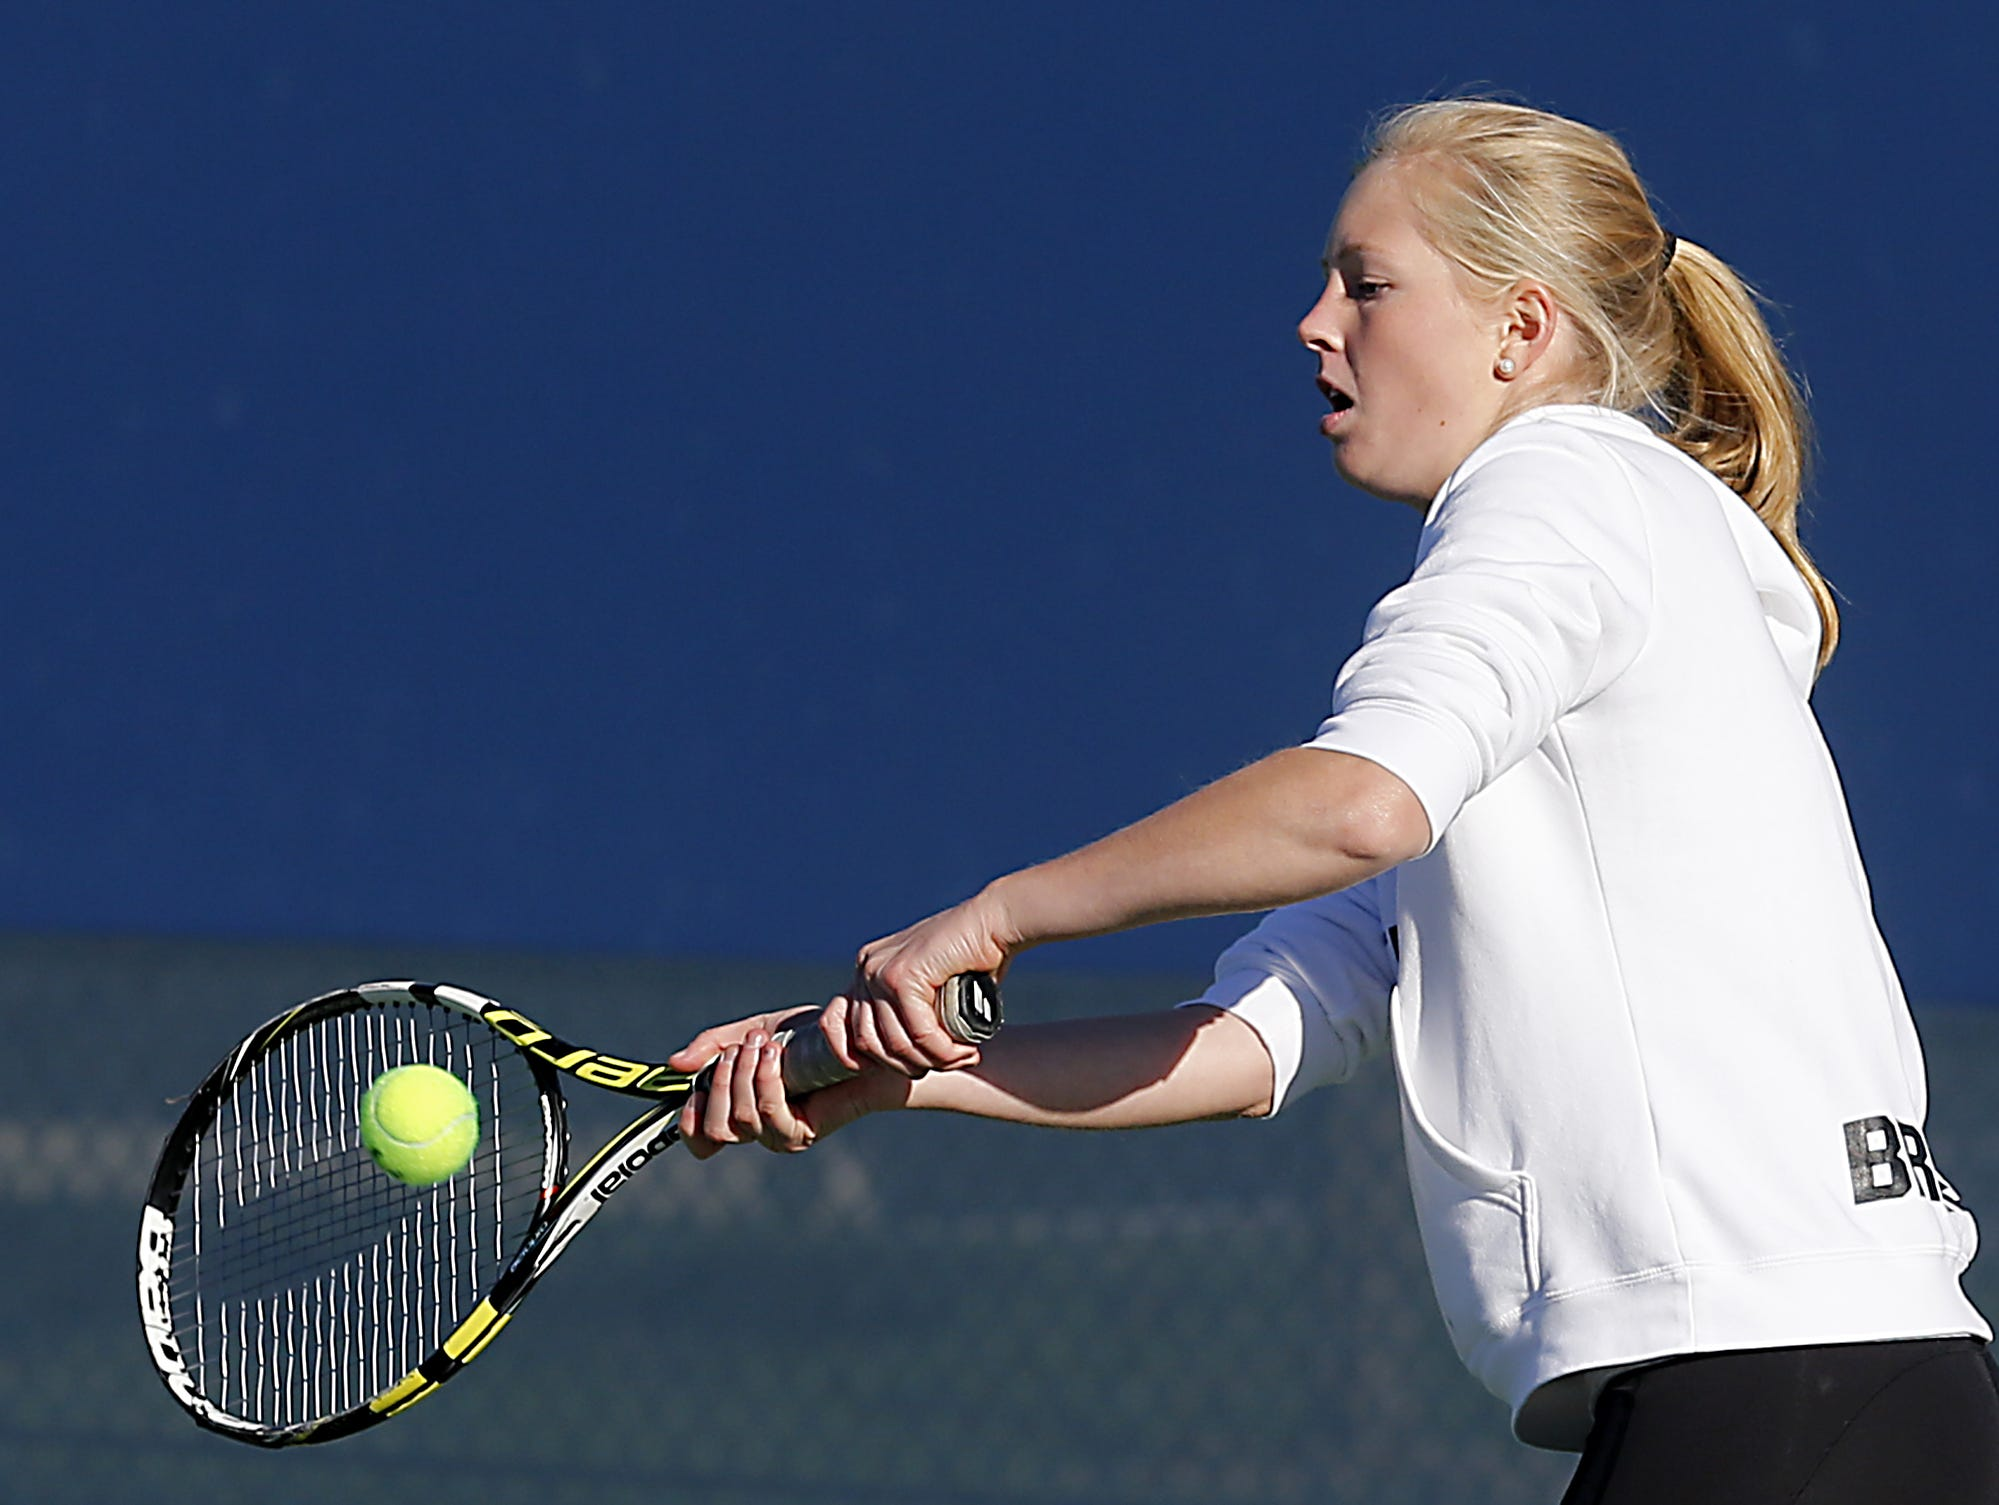 Indian Hill's Nina Price returns a volley during the Division II doubles bracket at the Lindner Family Tennis Center in Mason Friday, Oct. 19, 2018.